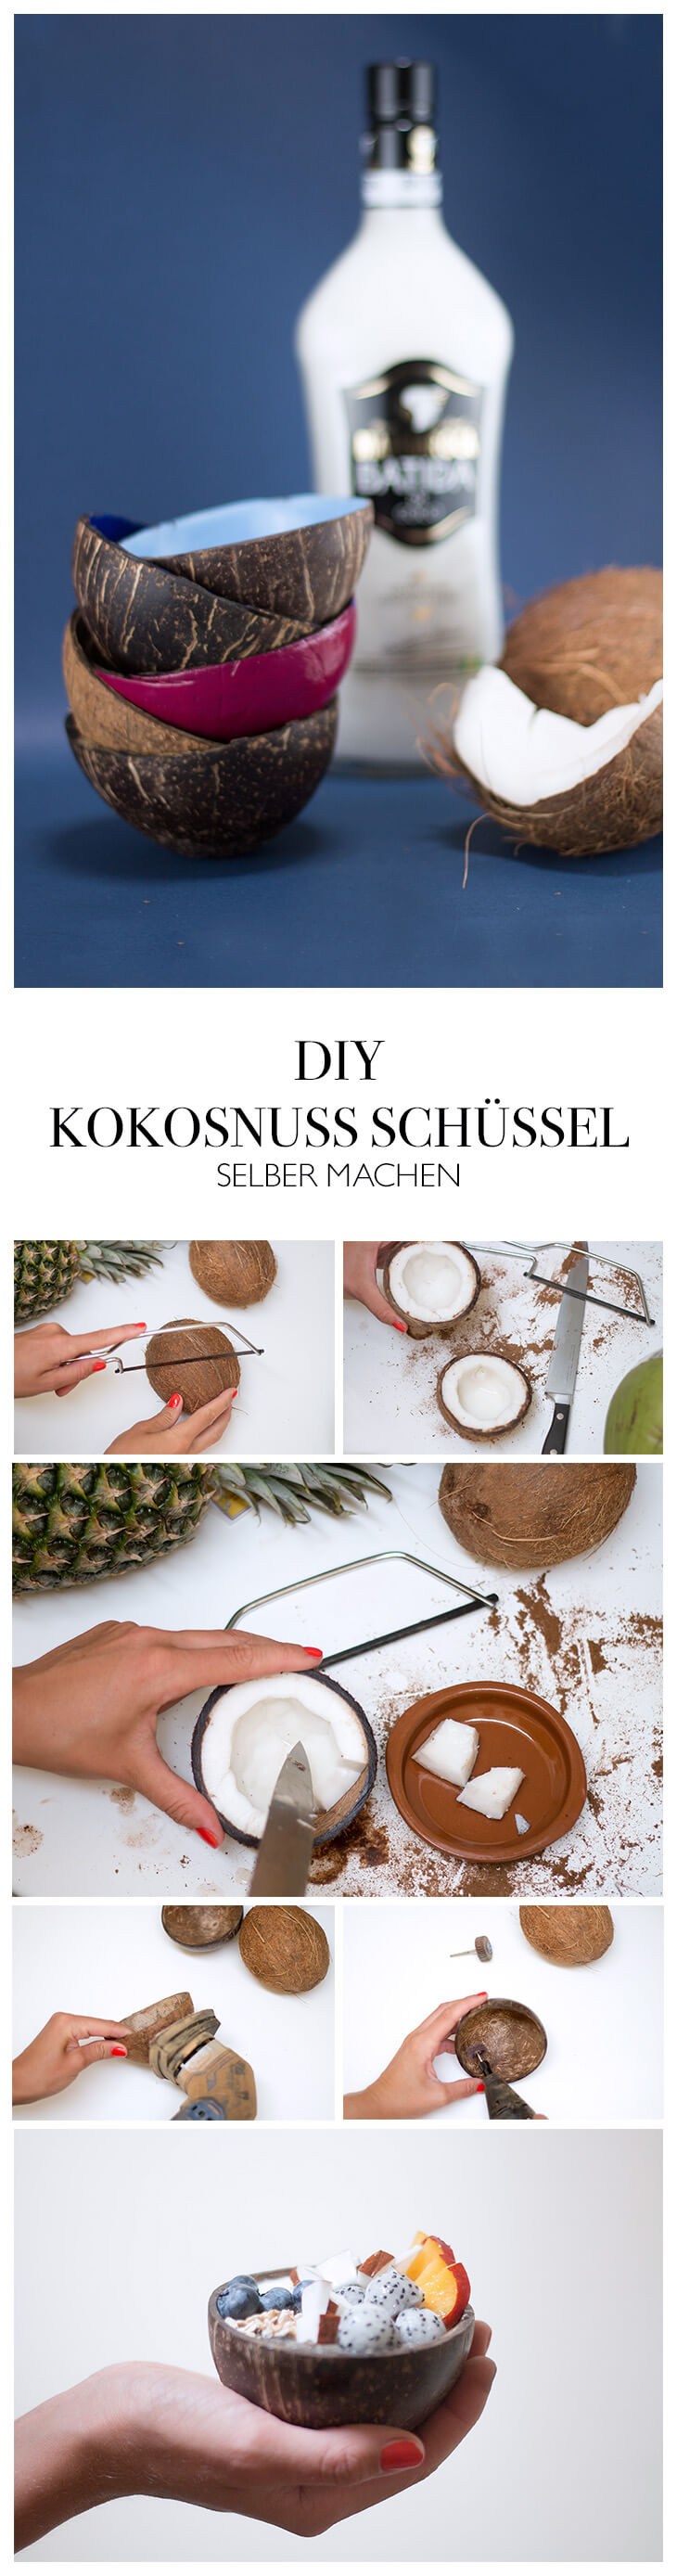 diy anleitung kokosnussschalen selber machen. Black Bedroom Furniture Sets. Home Design Ideas